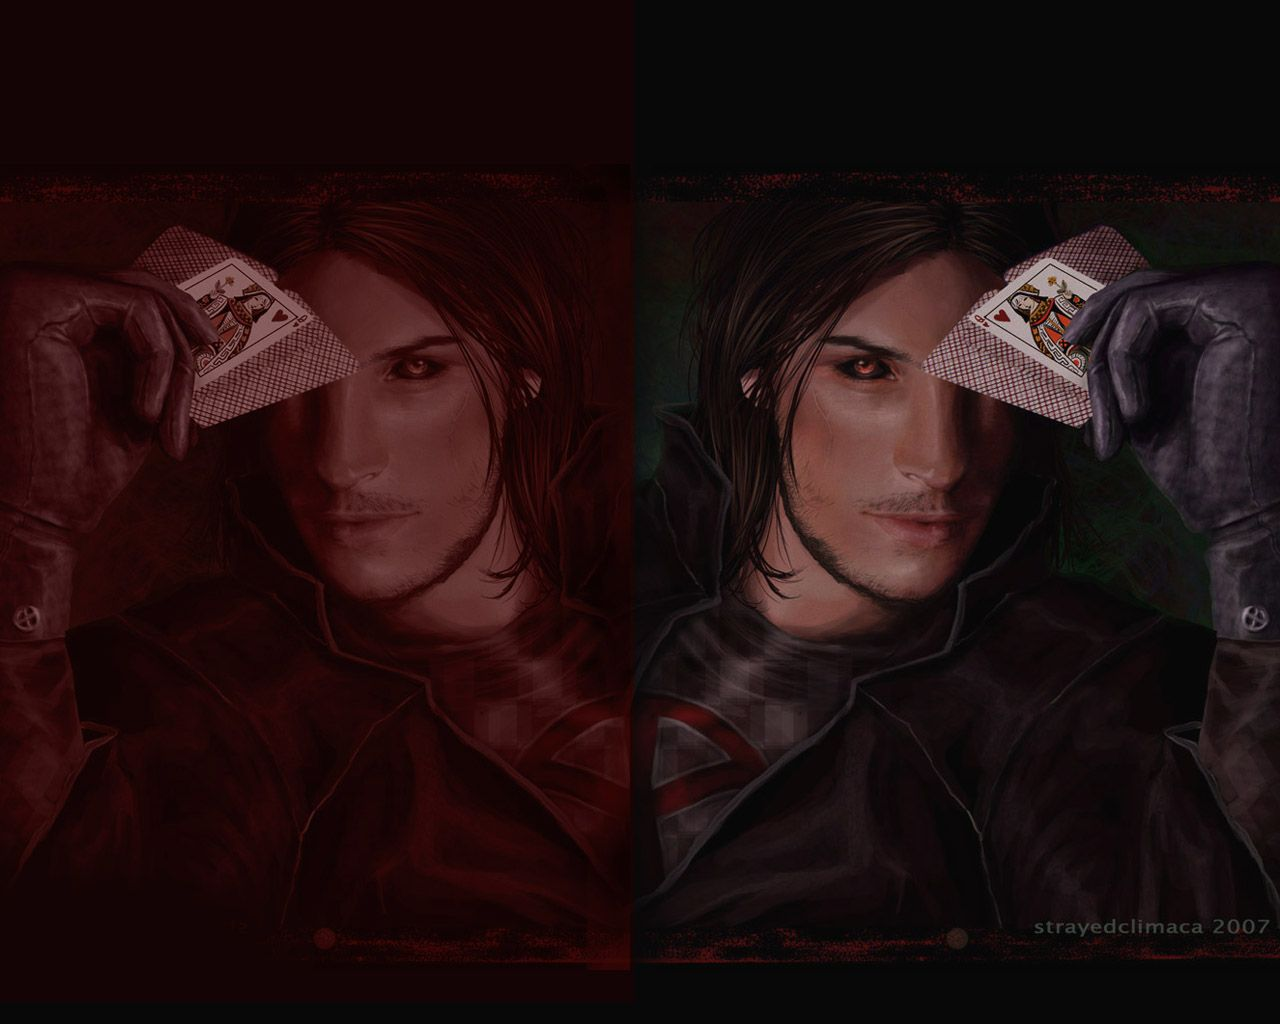 Batman vs superman dawn of justice image gallery picture 52810 - Gambit Wallpaper By Ivannamatilla On Deviantart